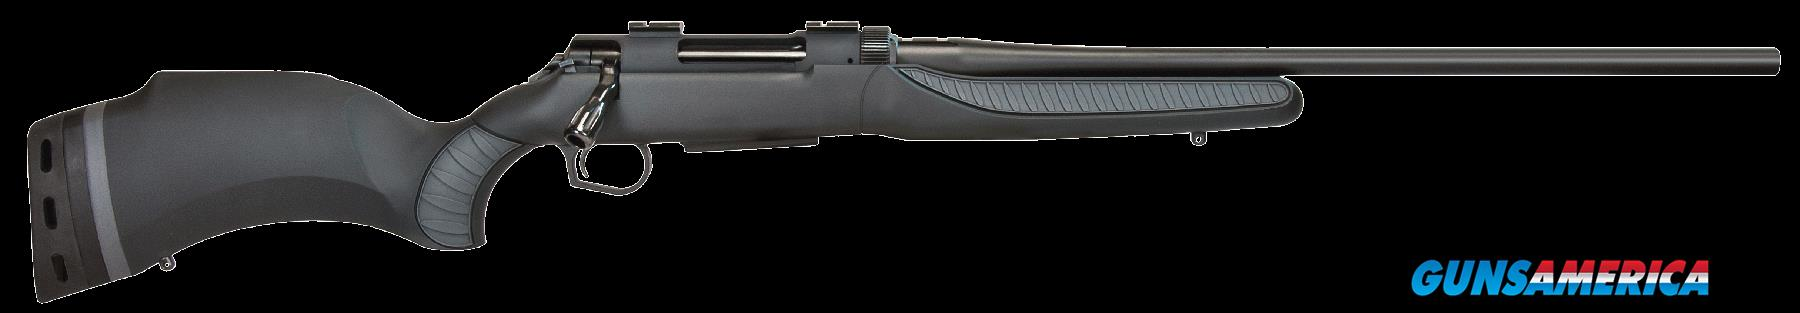 "T/C Arms 10278402 Dimension Right Hand Bolt 243 Win 22"" 3+1 Synthetic Black Stk Black  Guns > Rifles > Thompson Center Rifles > Dimension"